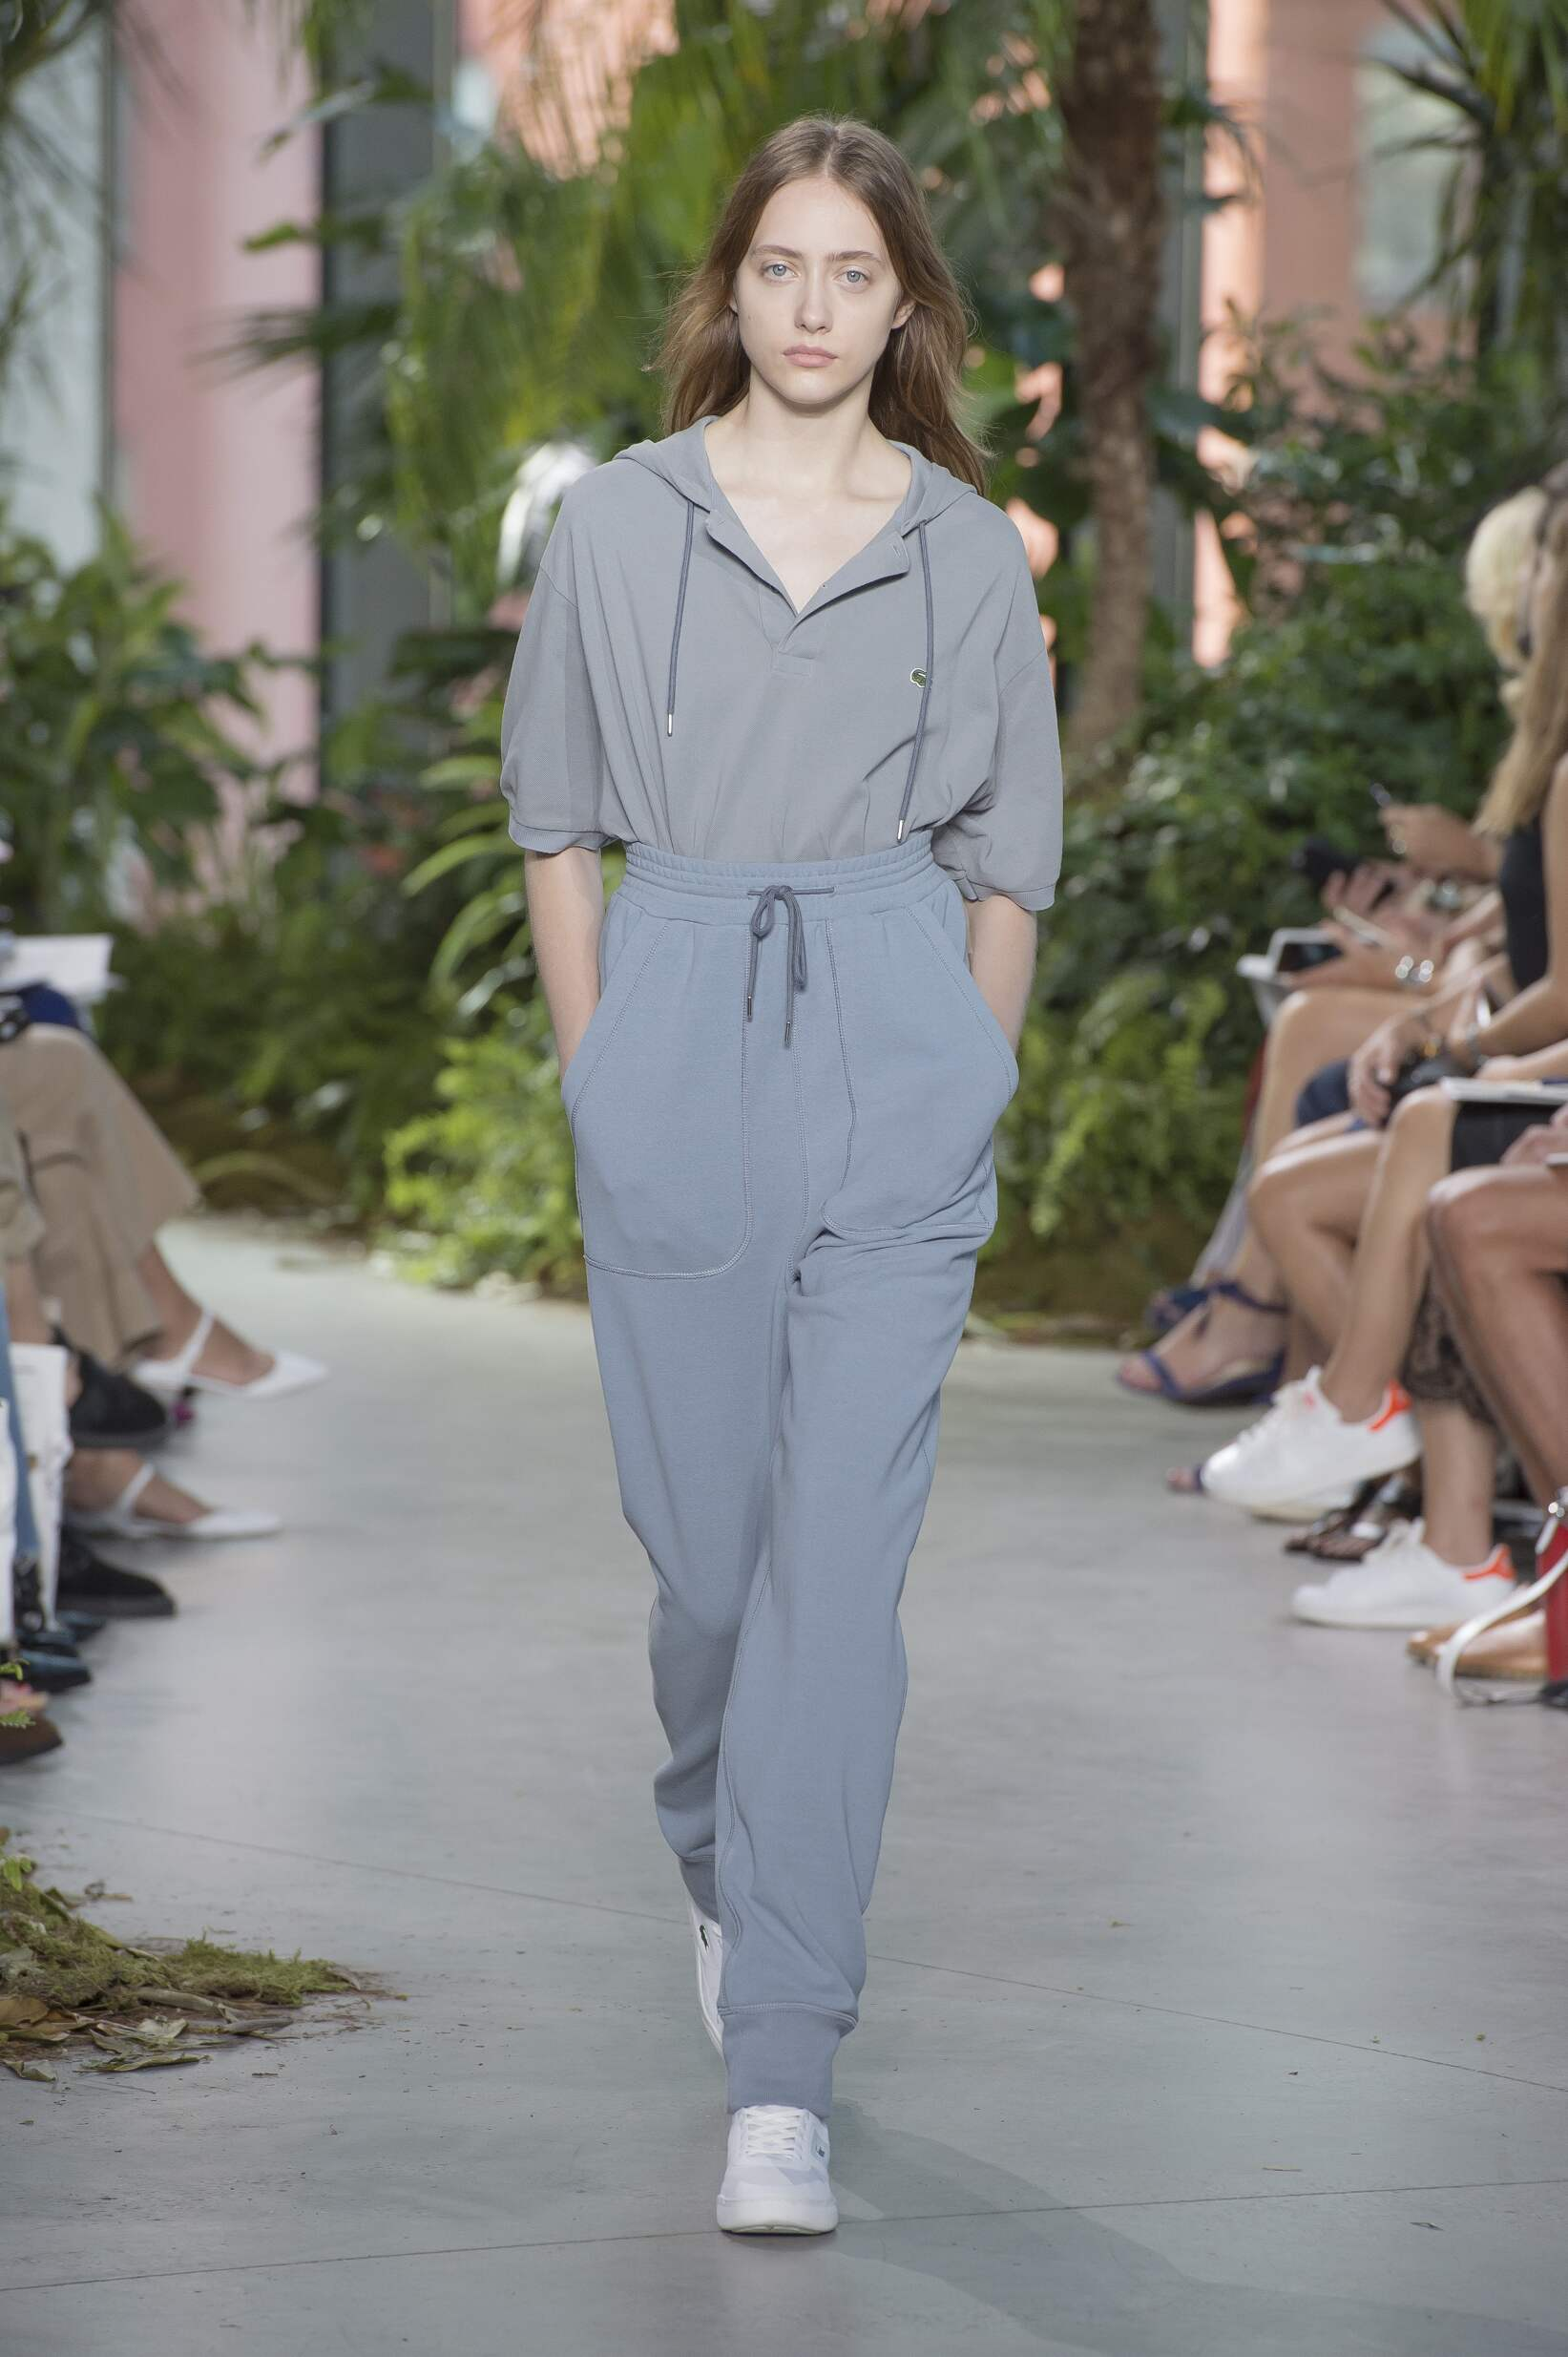 Spring 2017 Woman Fashion Show Lacoste